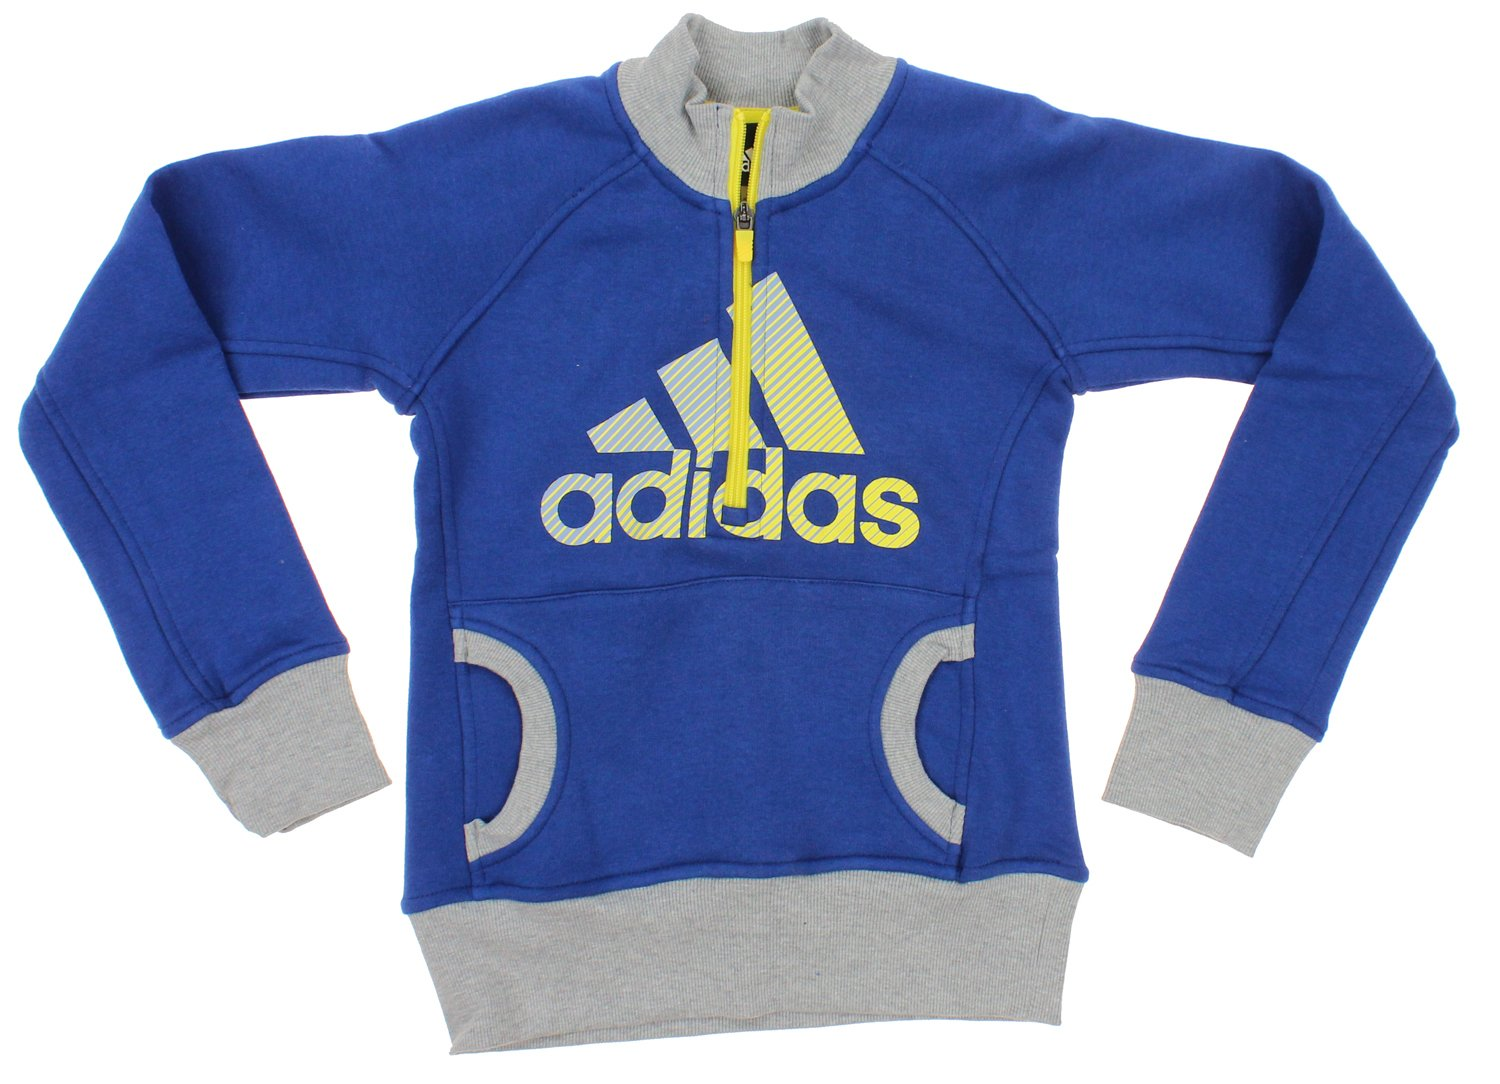 Adidas Youth Big Girls Cotton Fleece Graphic Pullover Sweater